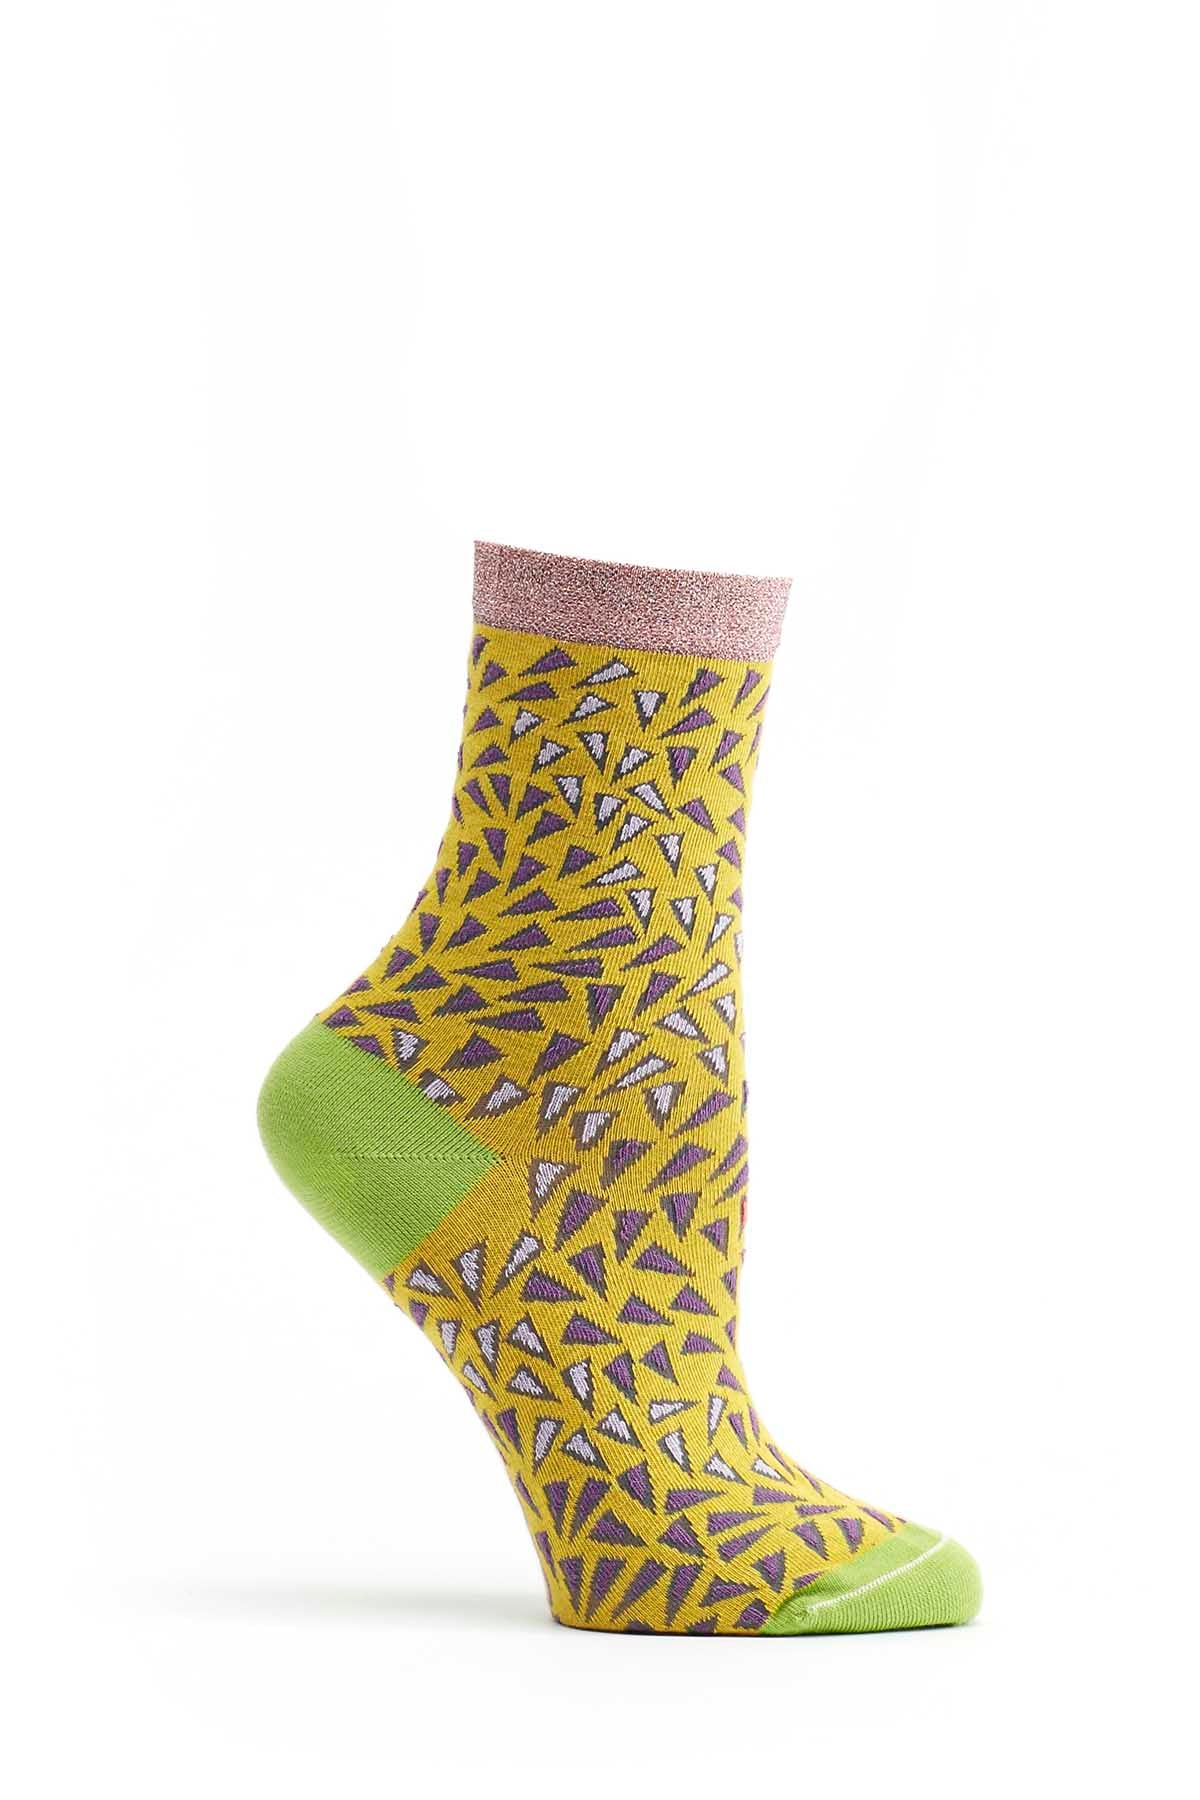 Ozone Sunflower Wavy-Printed Sock